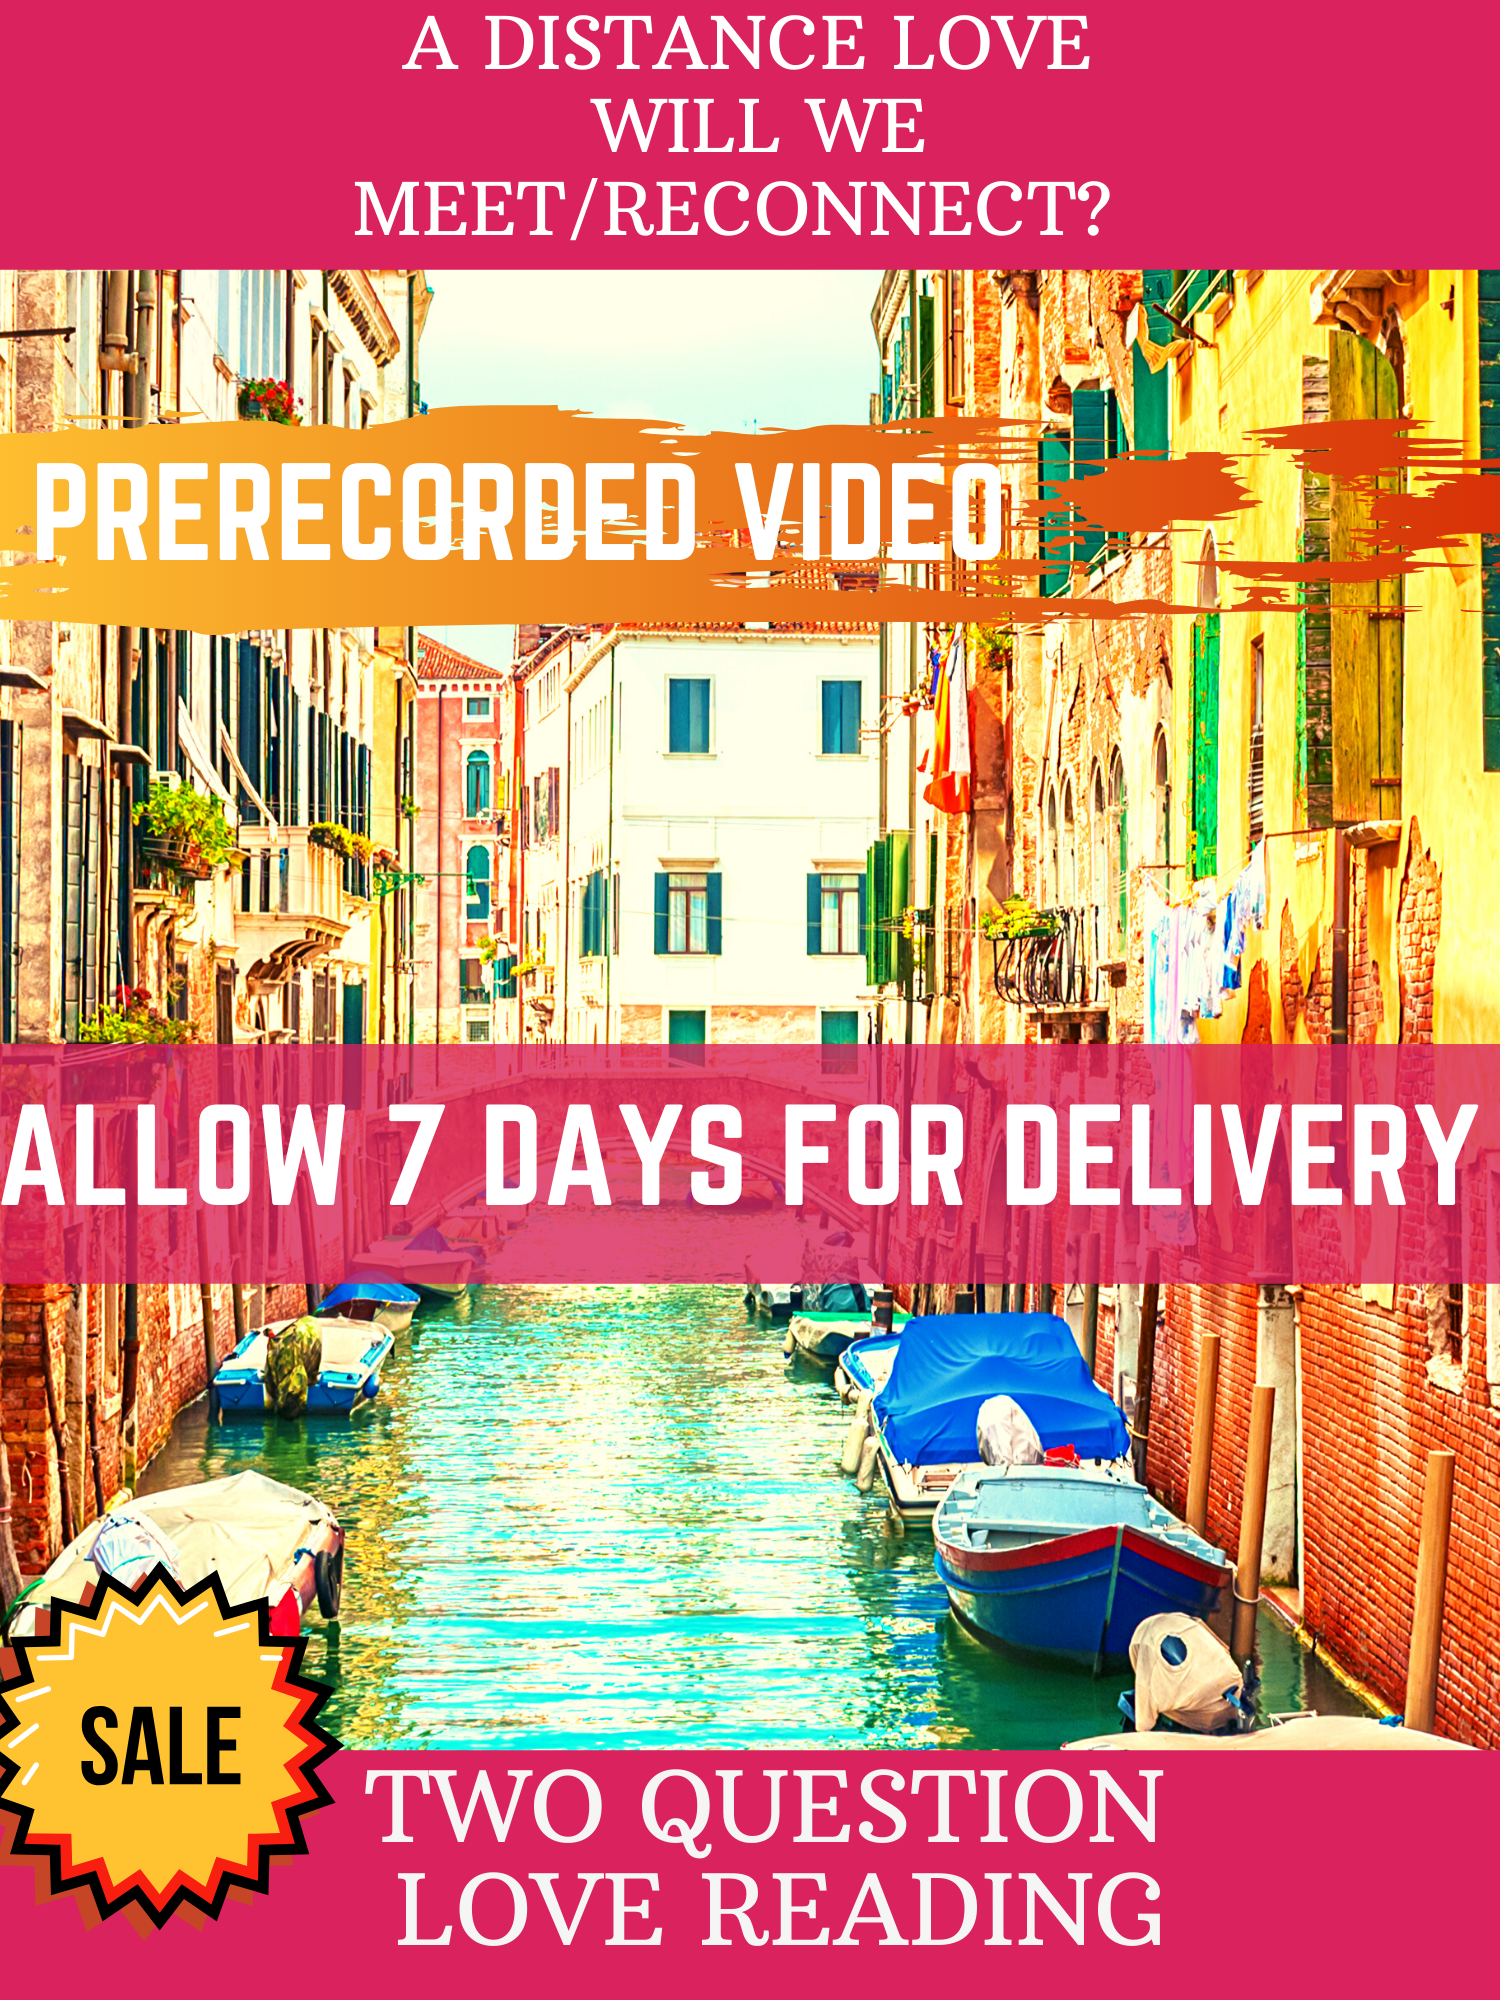 2 QUESTION VIDEO STANDARD LOVE READING (3-5 CARD SPREAD) (Please Allow Up To 7 Days For Delivery)